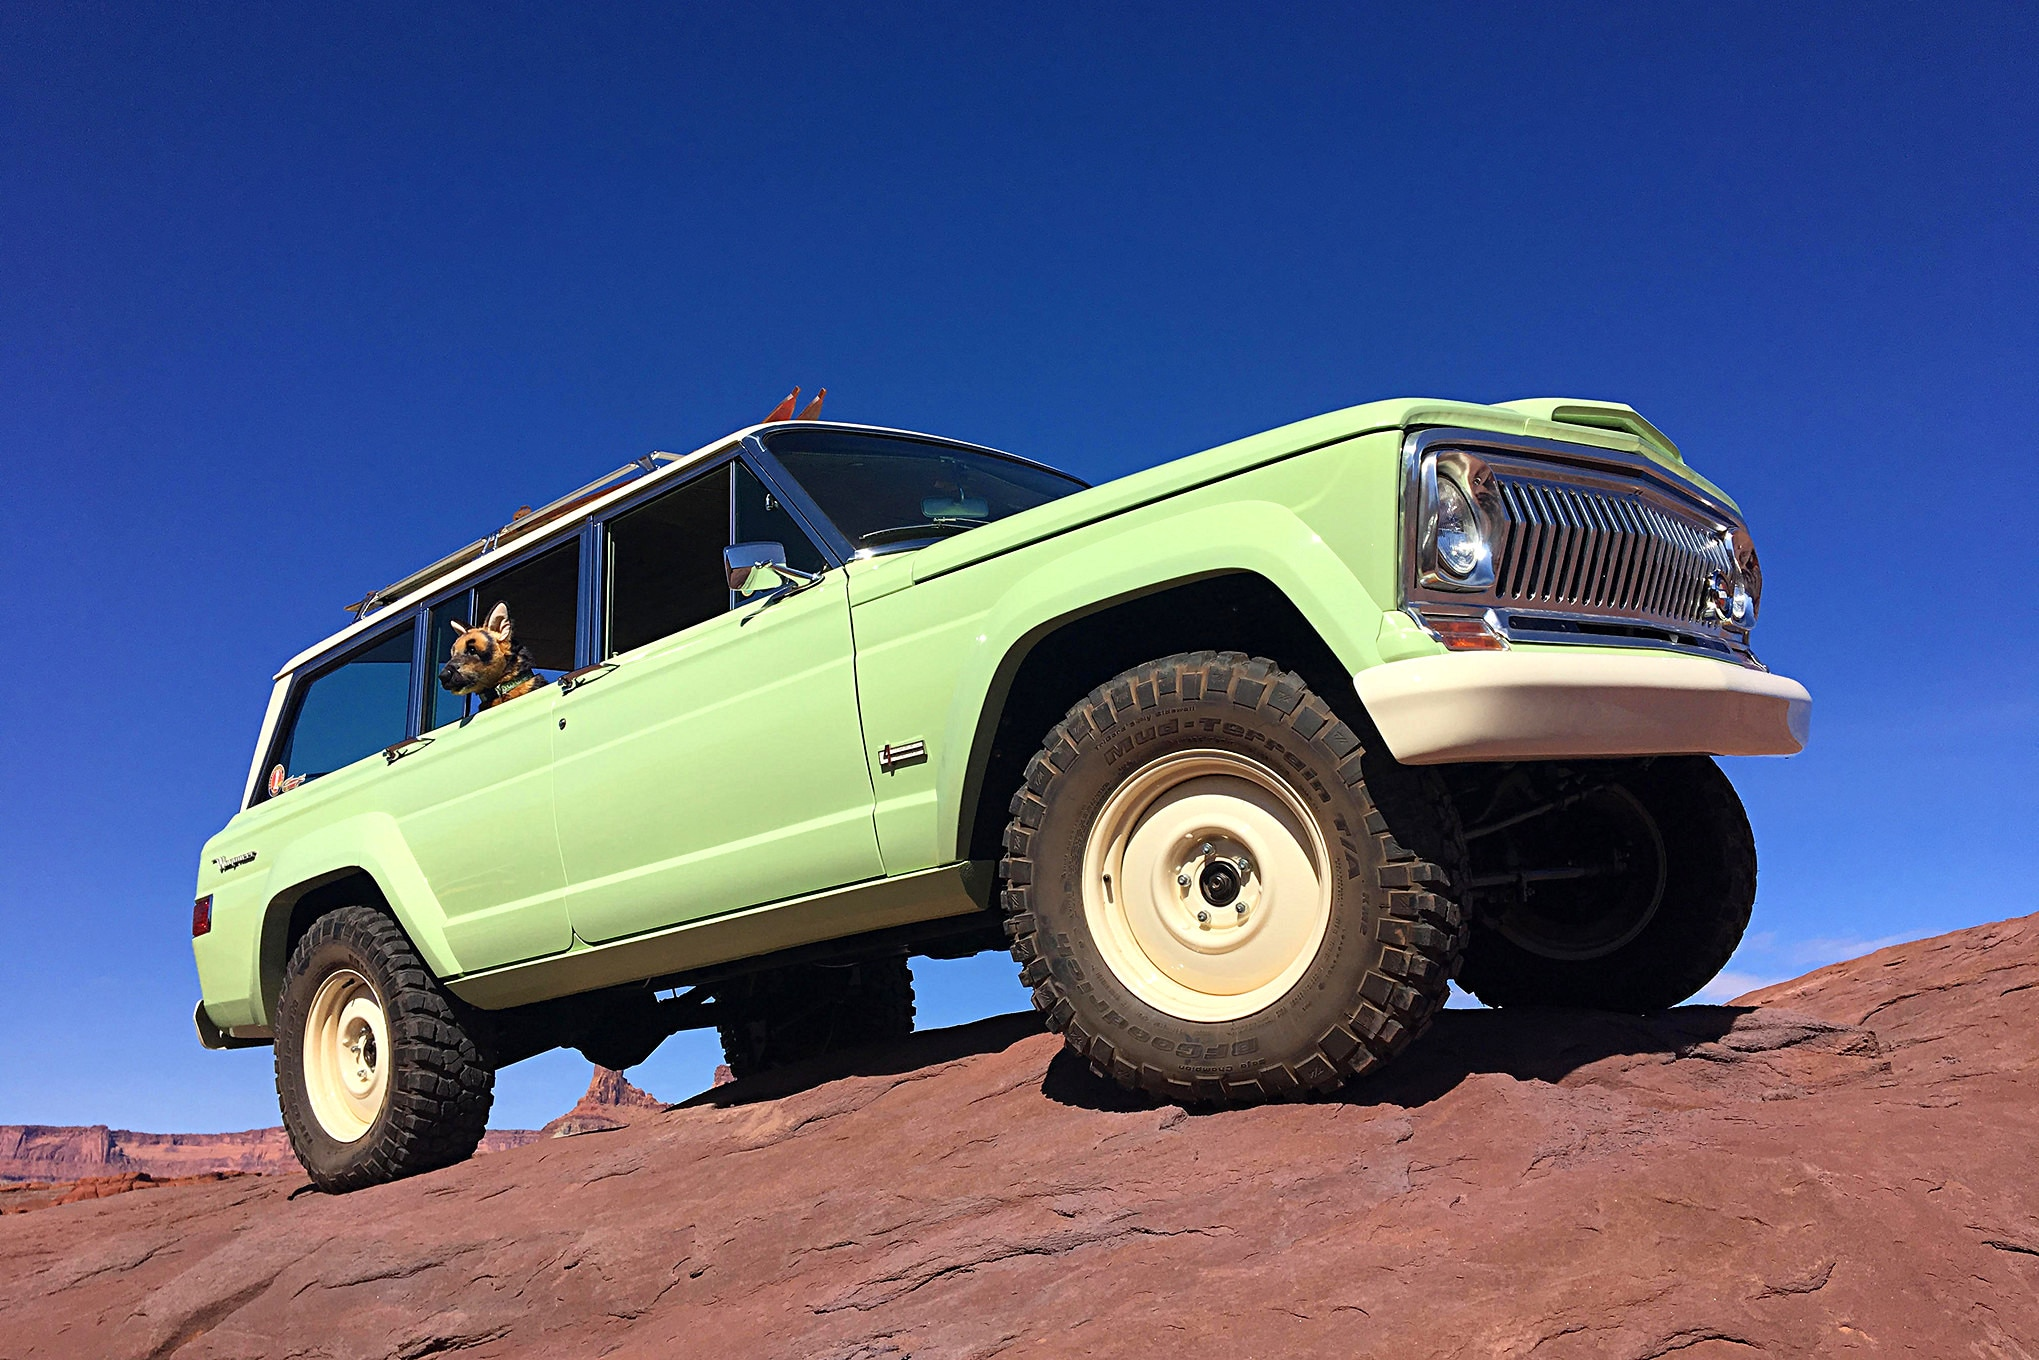 Jeep Concept Moab Wagoneer Roadtrip.JPG Photo 165480334